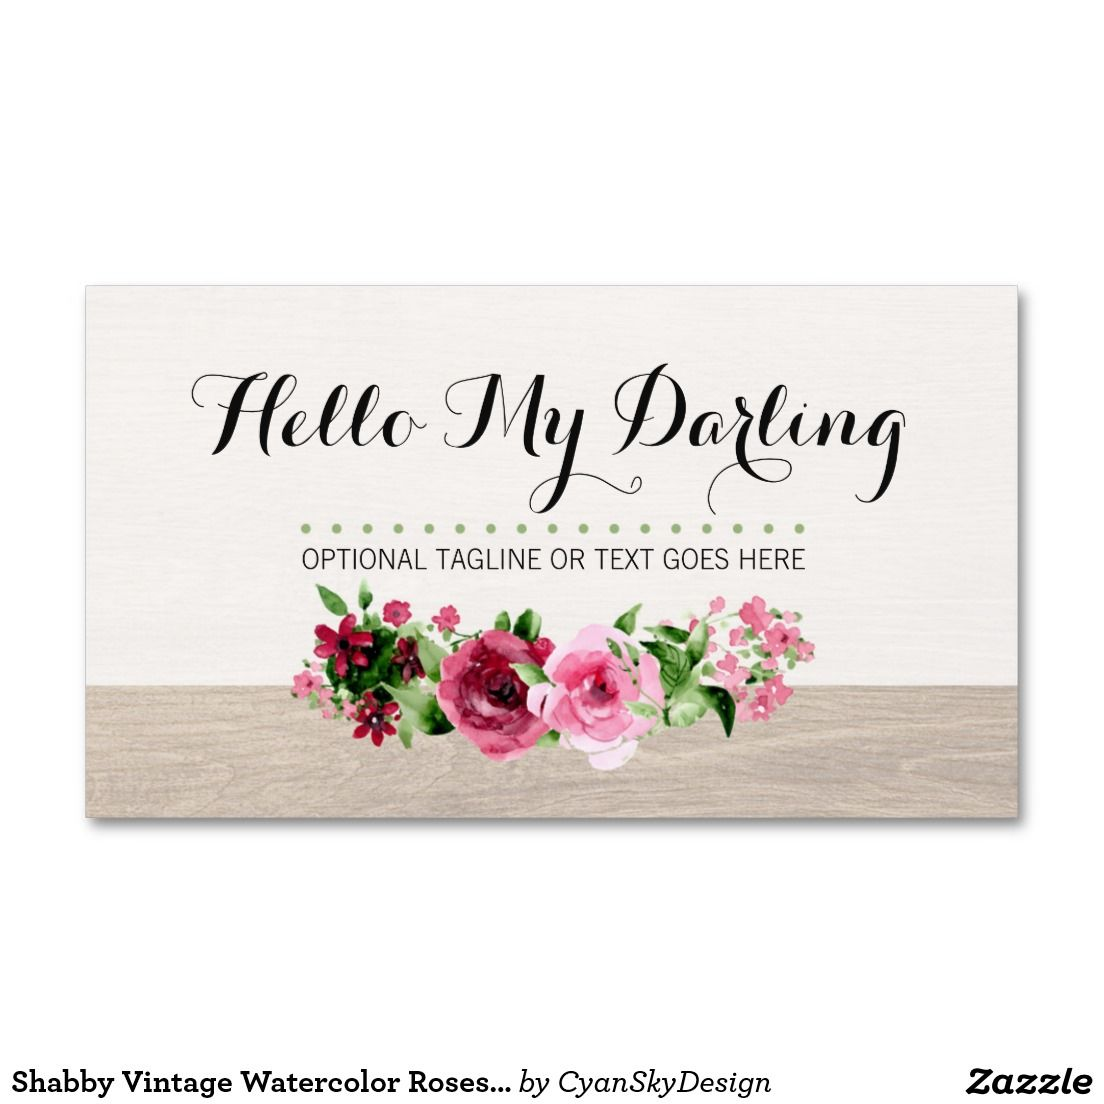 Rustic wood shabby roses vintage watercolor business card wood shabby vintage watercolor roses rustic wood business card on zazzle reheart Image collections